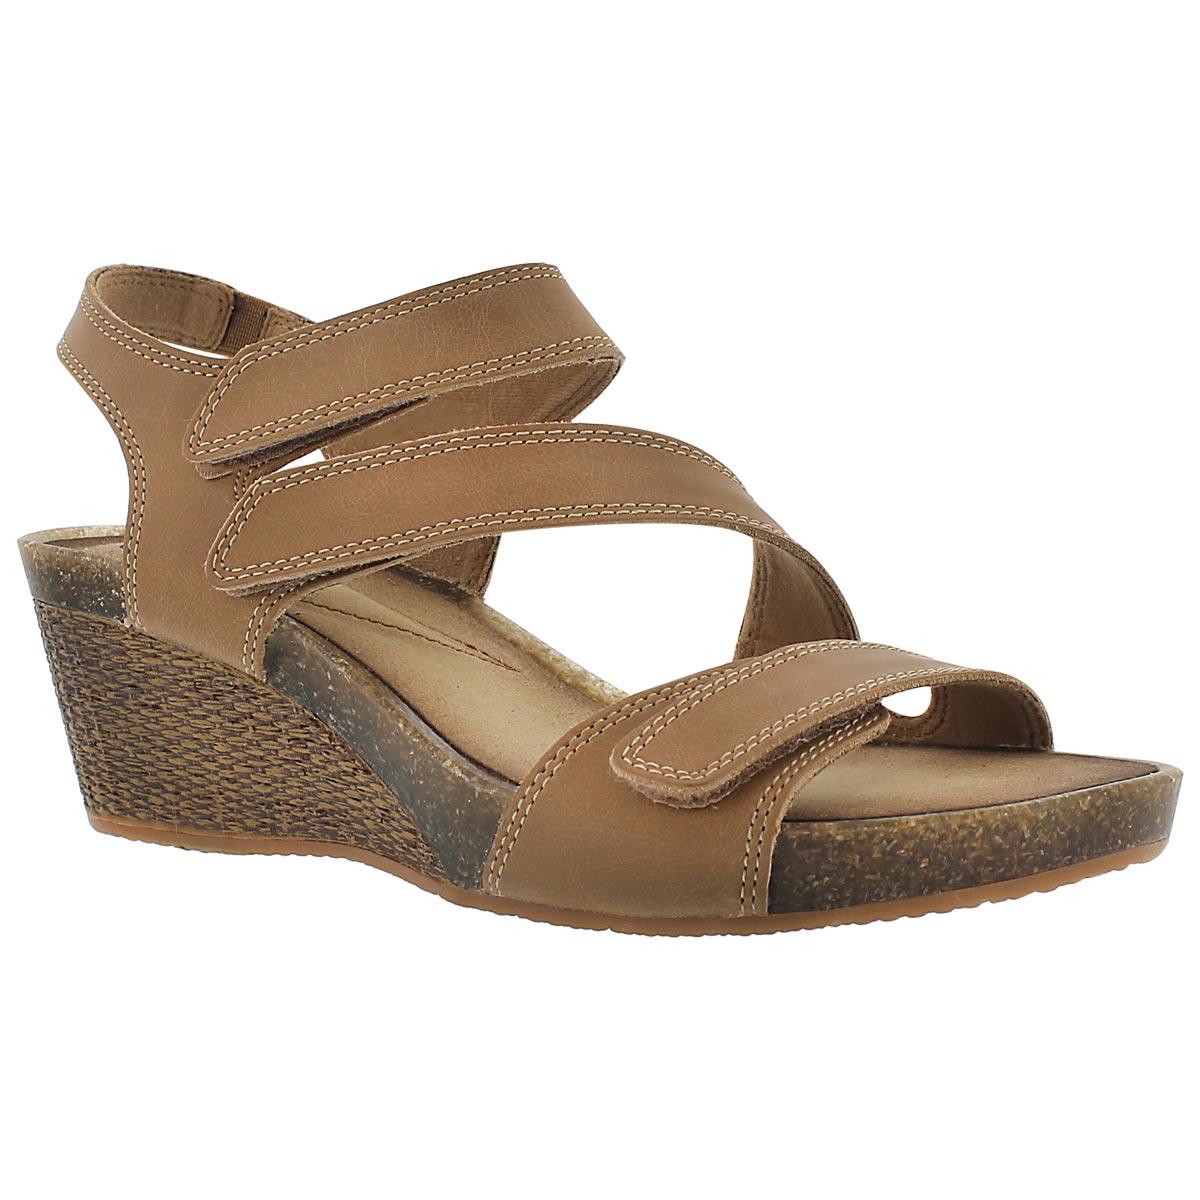 Lds Havely Ordo beige wedge sandal